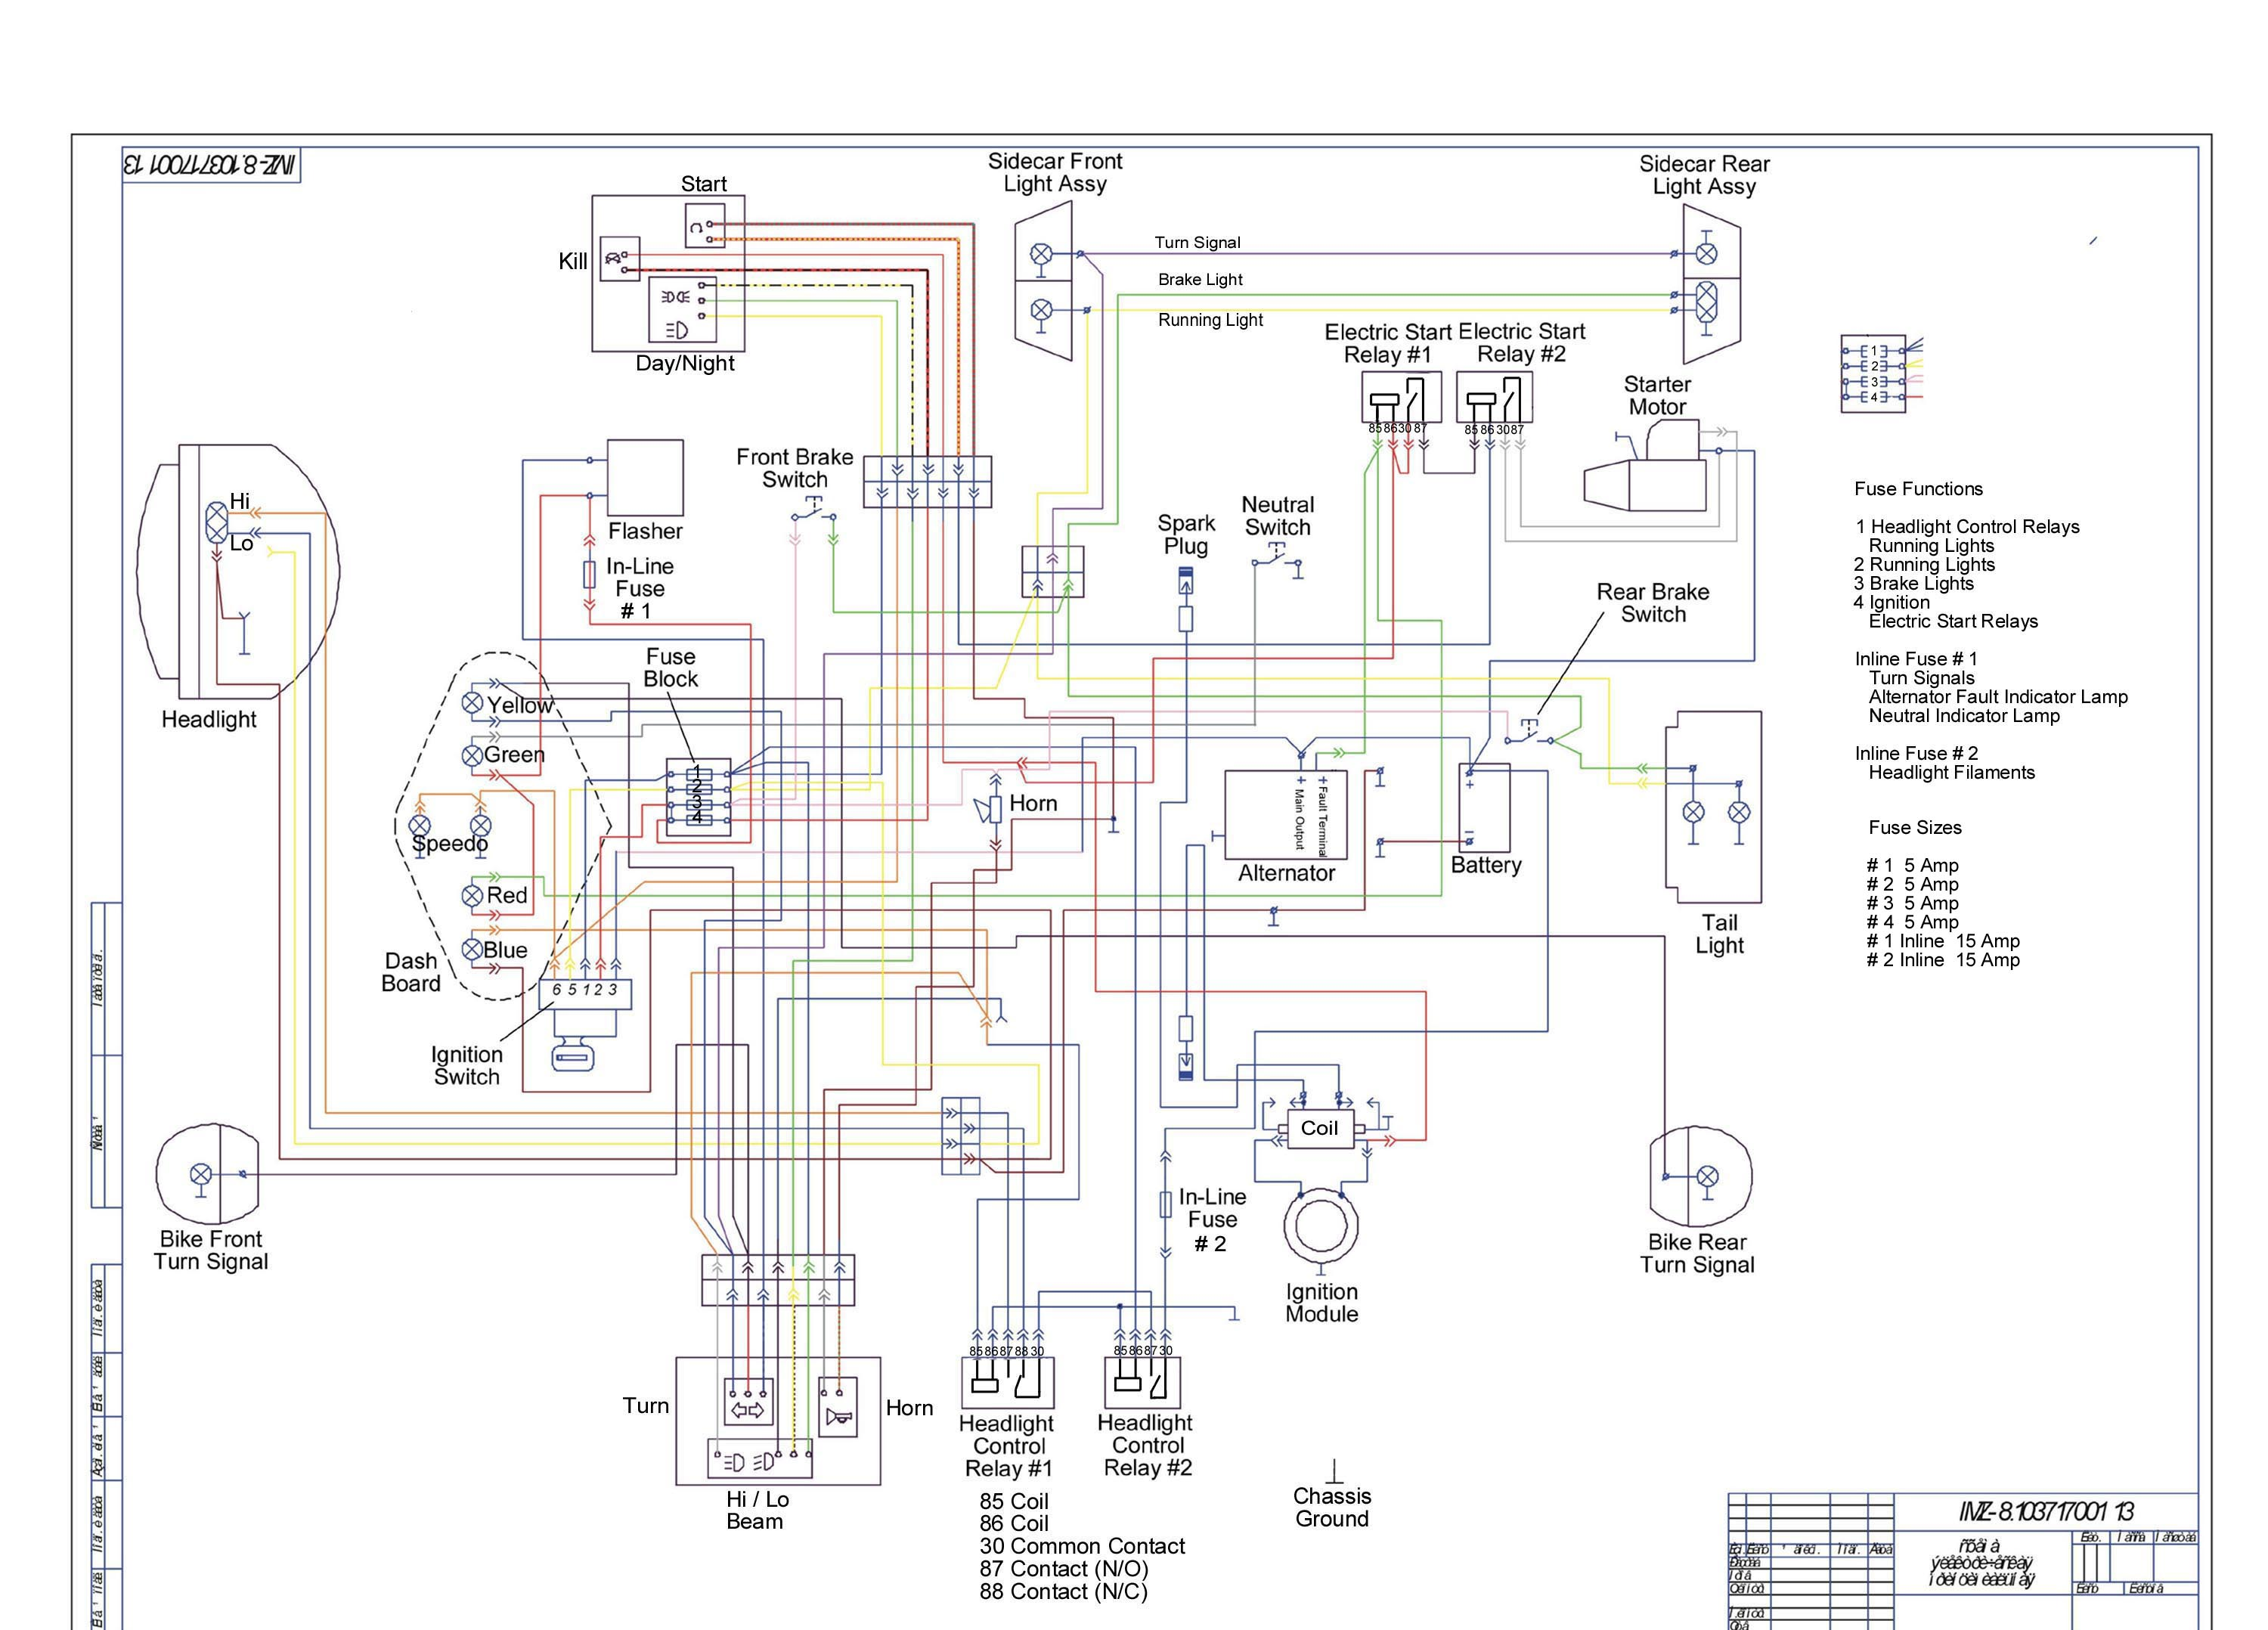 1998 Vulcan 1500 Wiring Diagram All Kind Of Diagrams Kawasaki Drifter 2003 Honda Shadow 750 Auto Fuel Sysytem